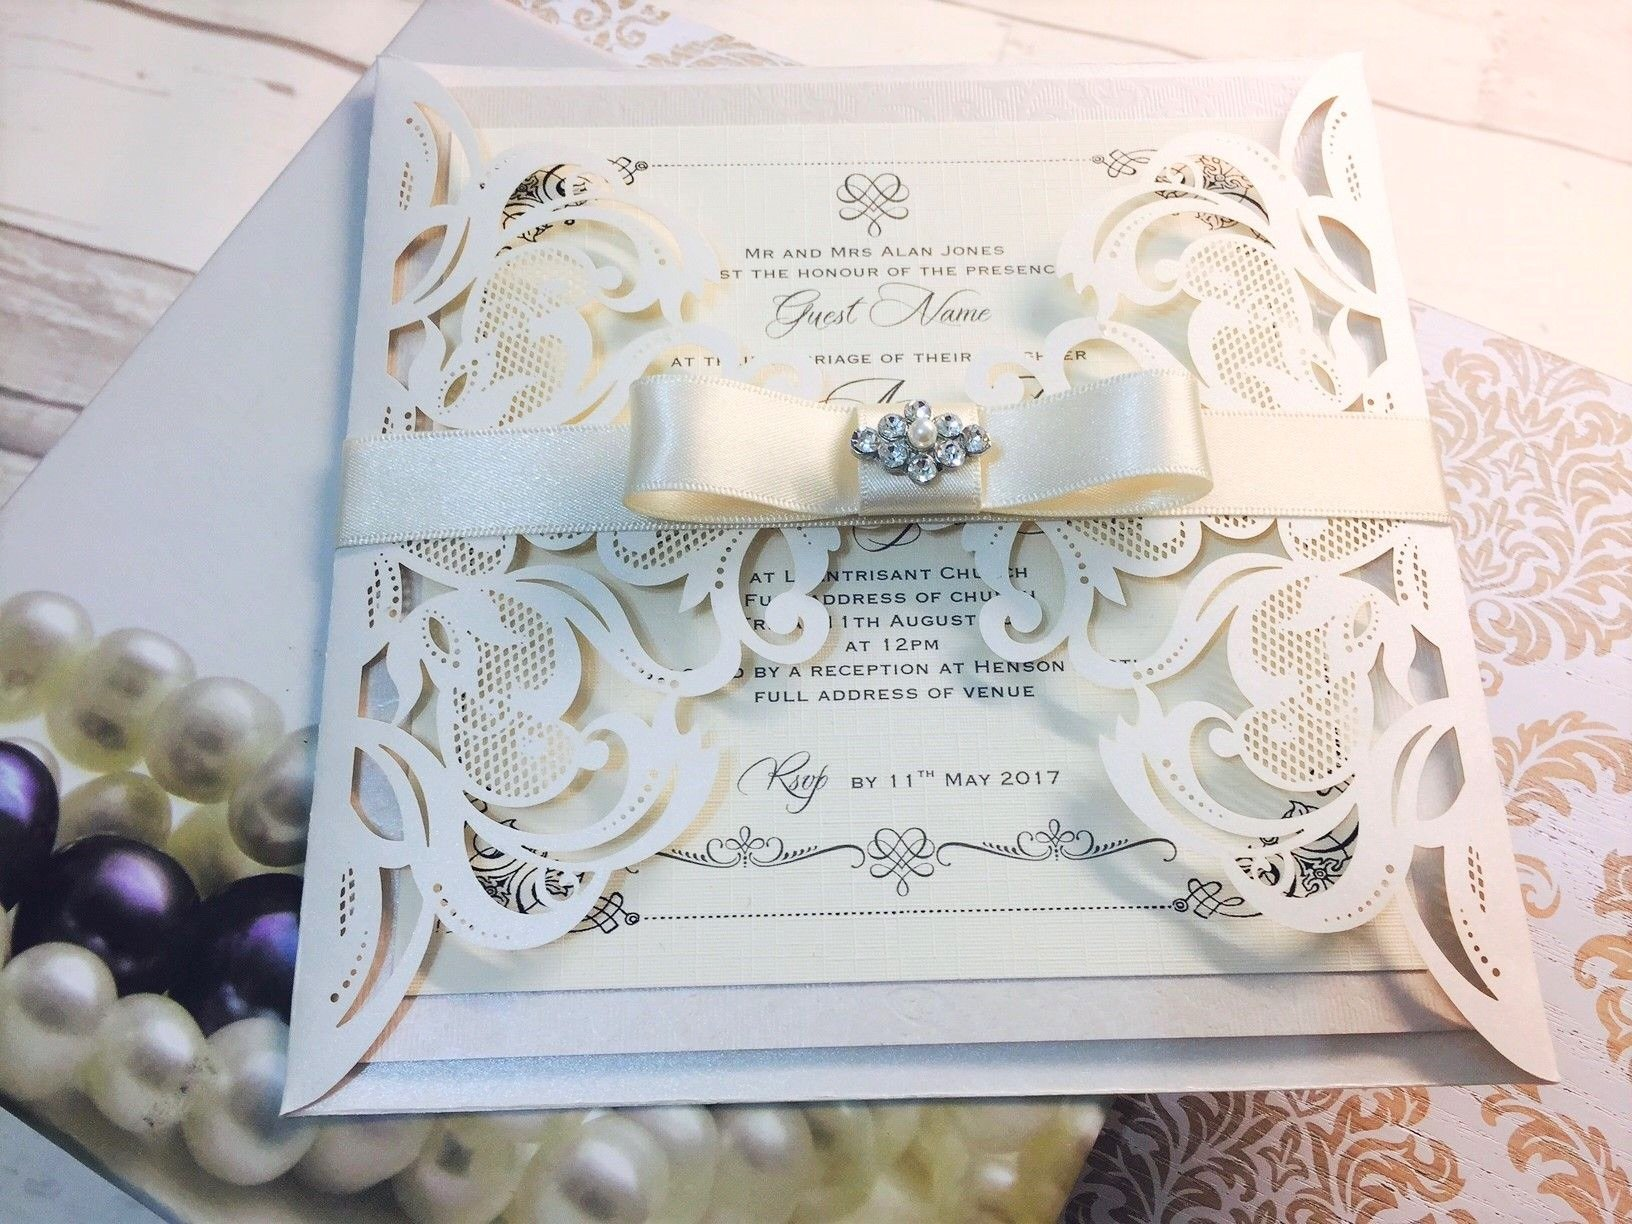 Boxed luxury wedding invitations handmade with beautiful bows brooches and ribbons